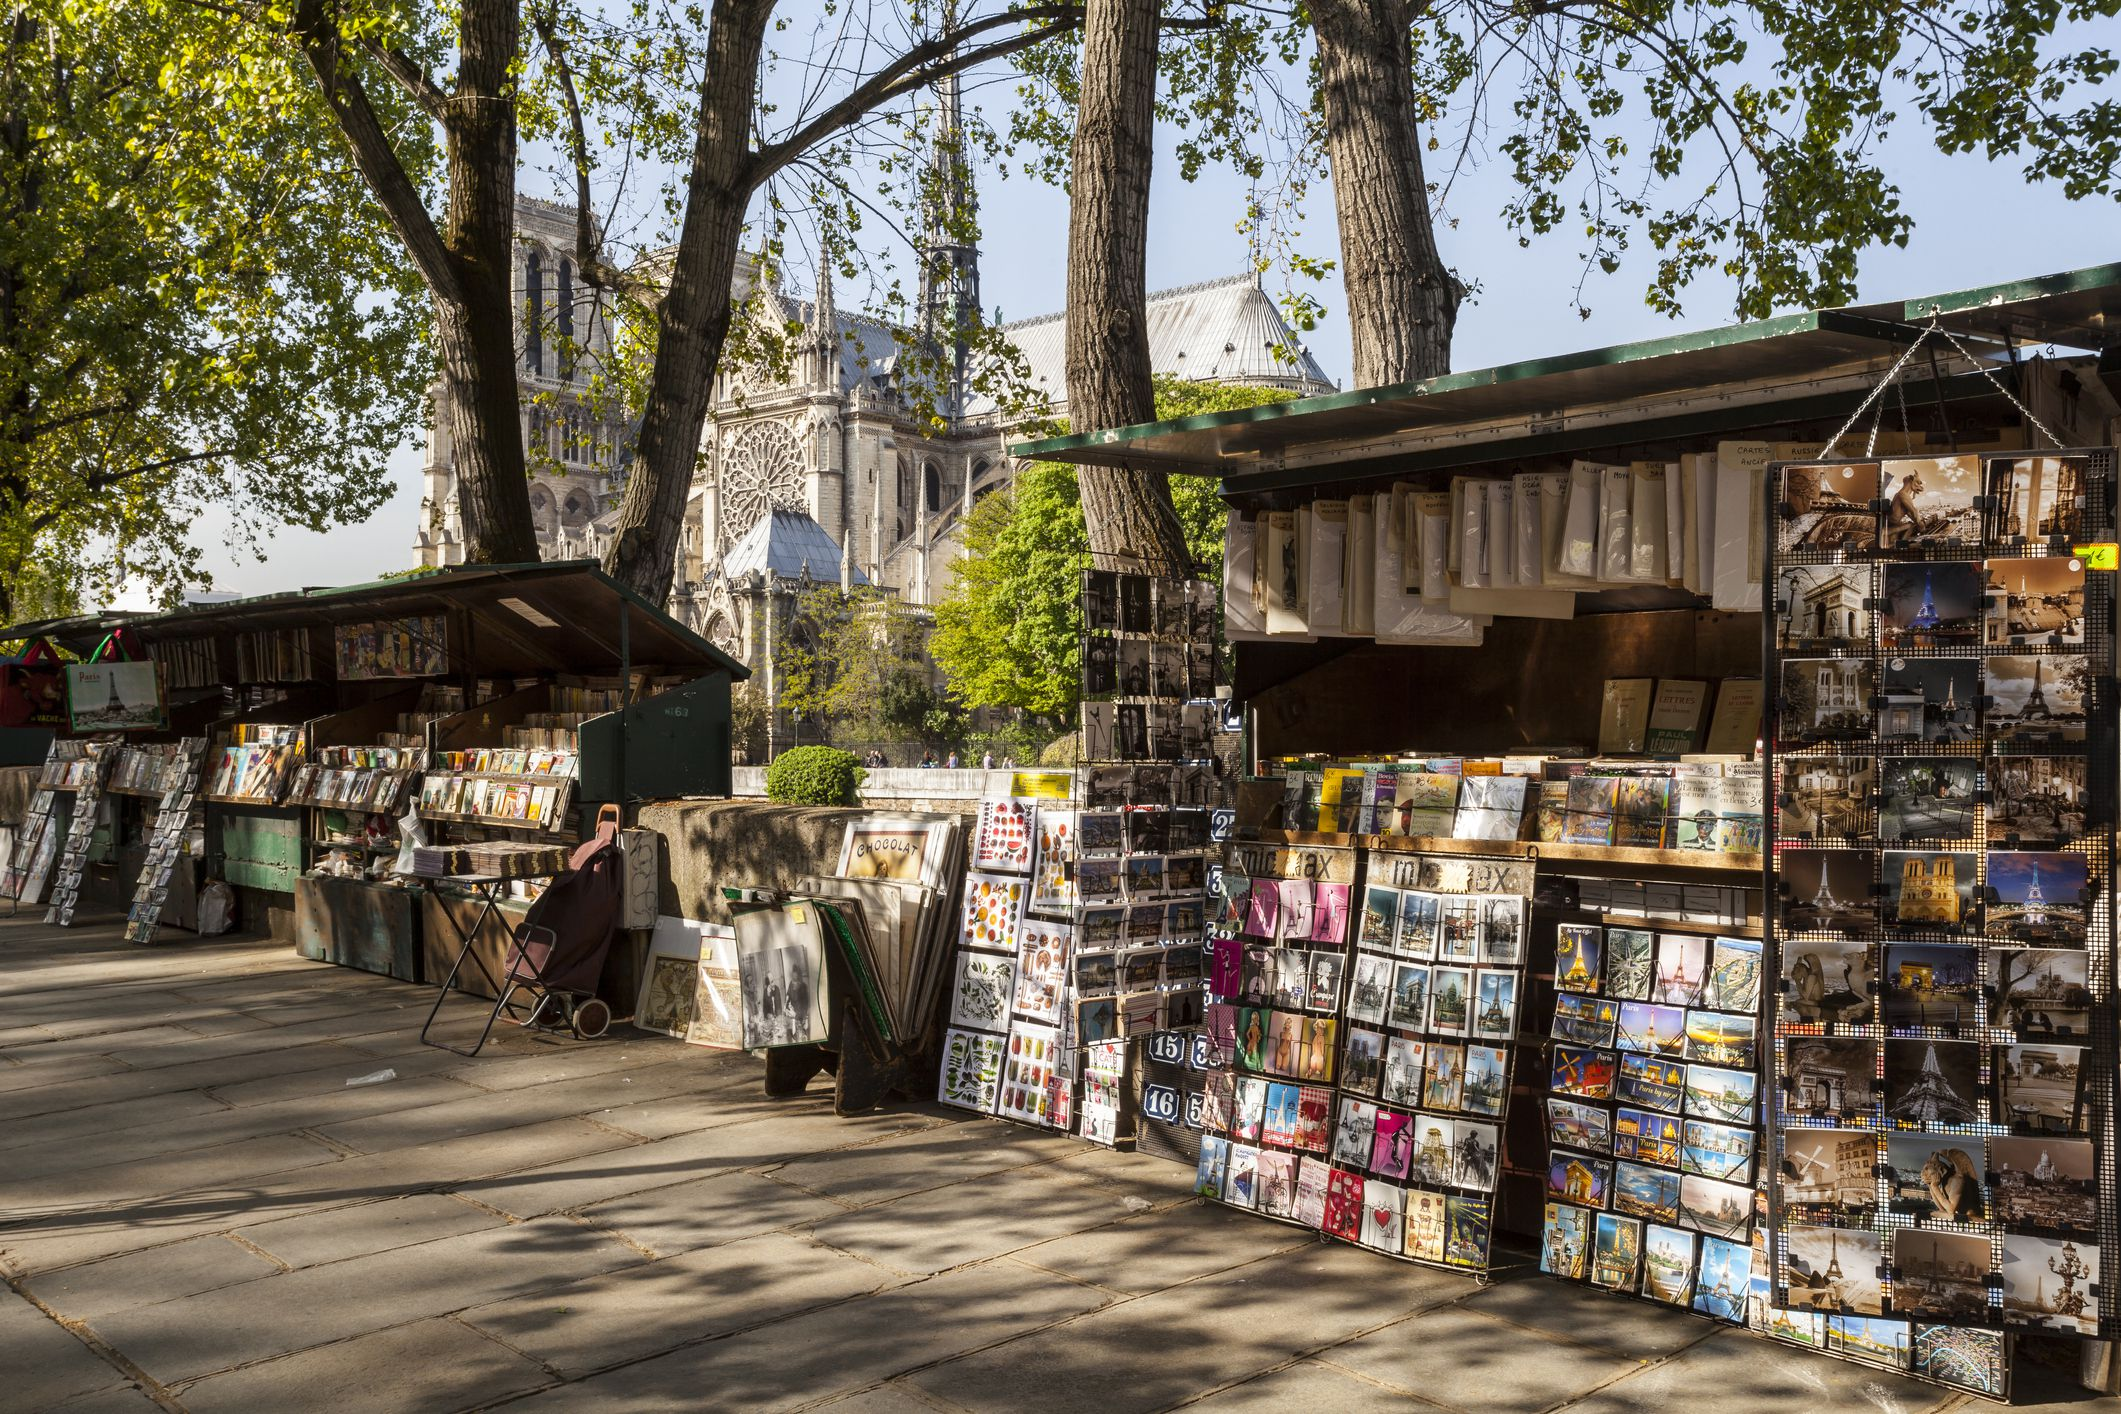 Book and postcard sellers by the river Seine